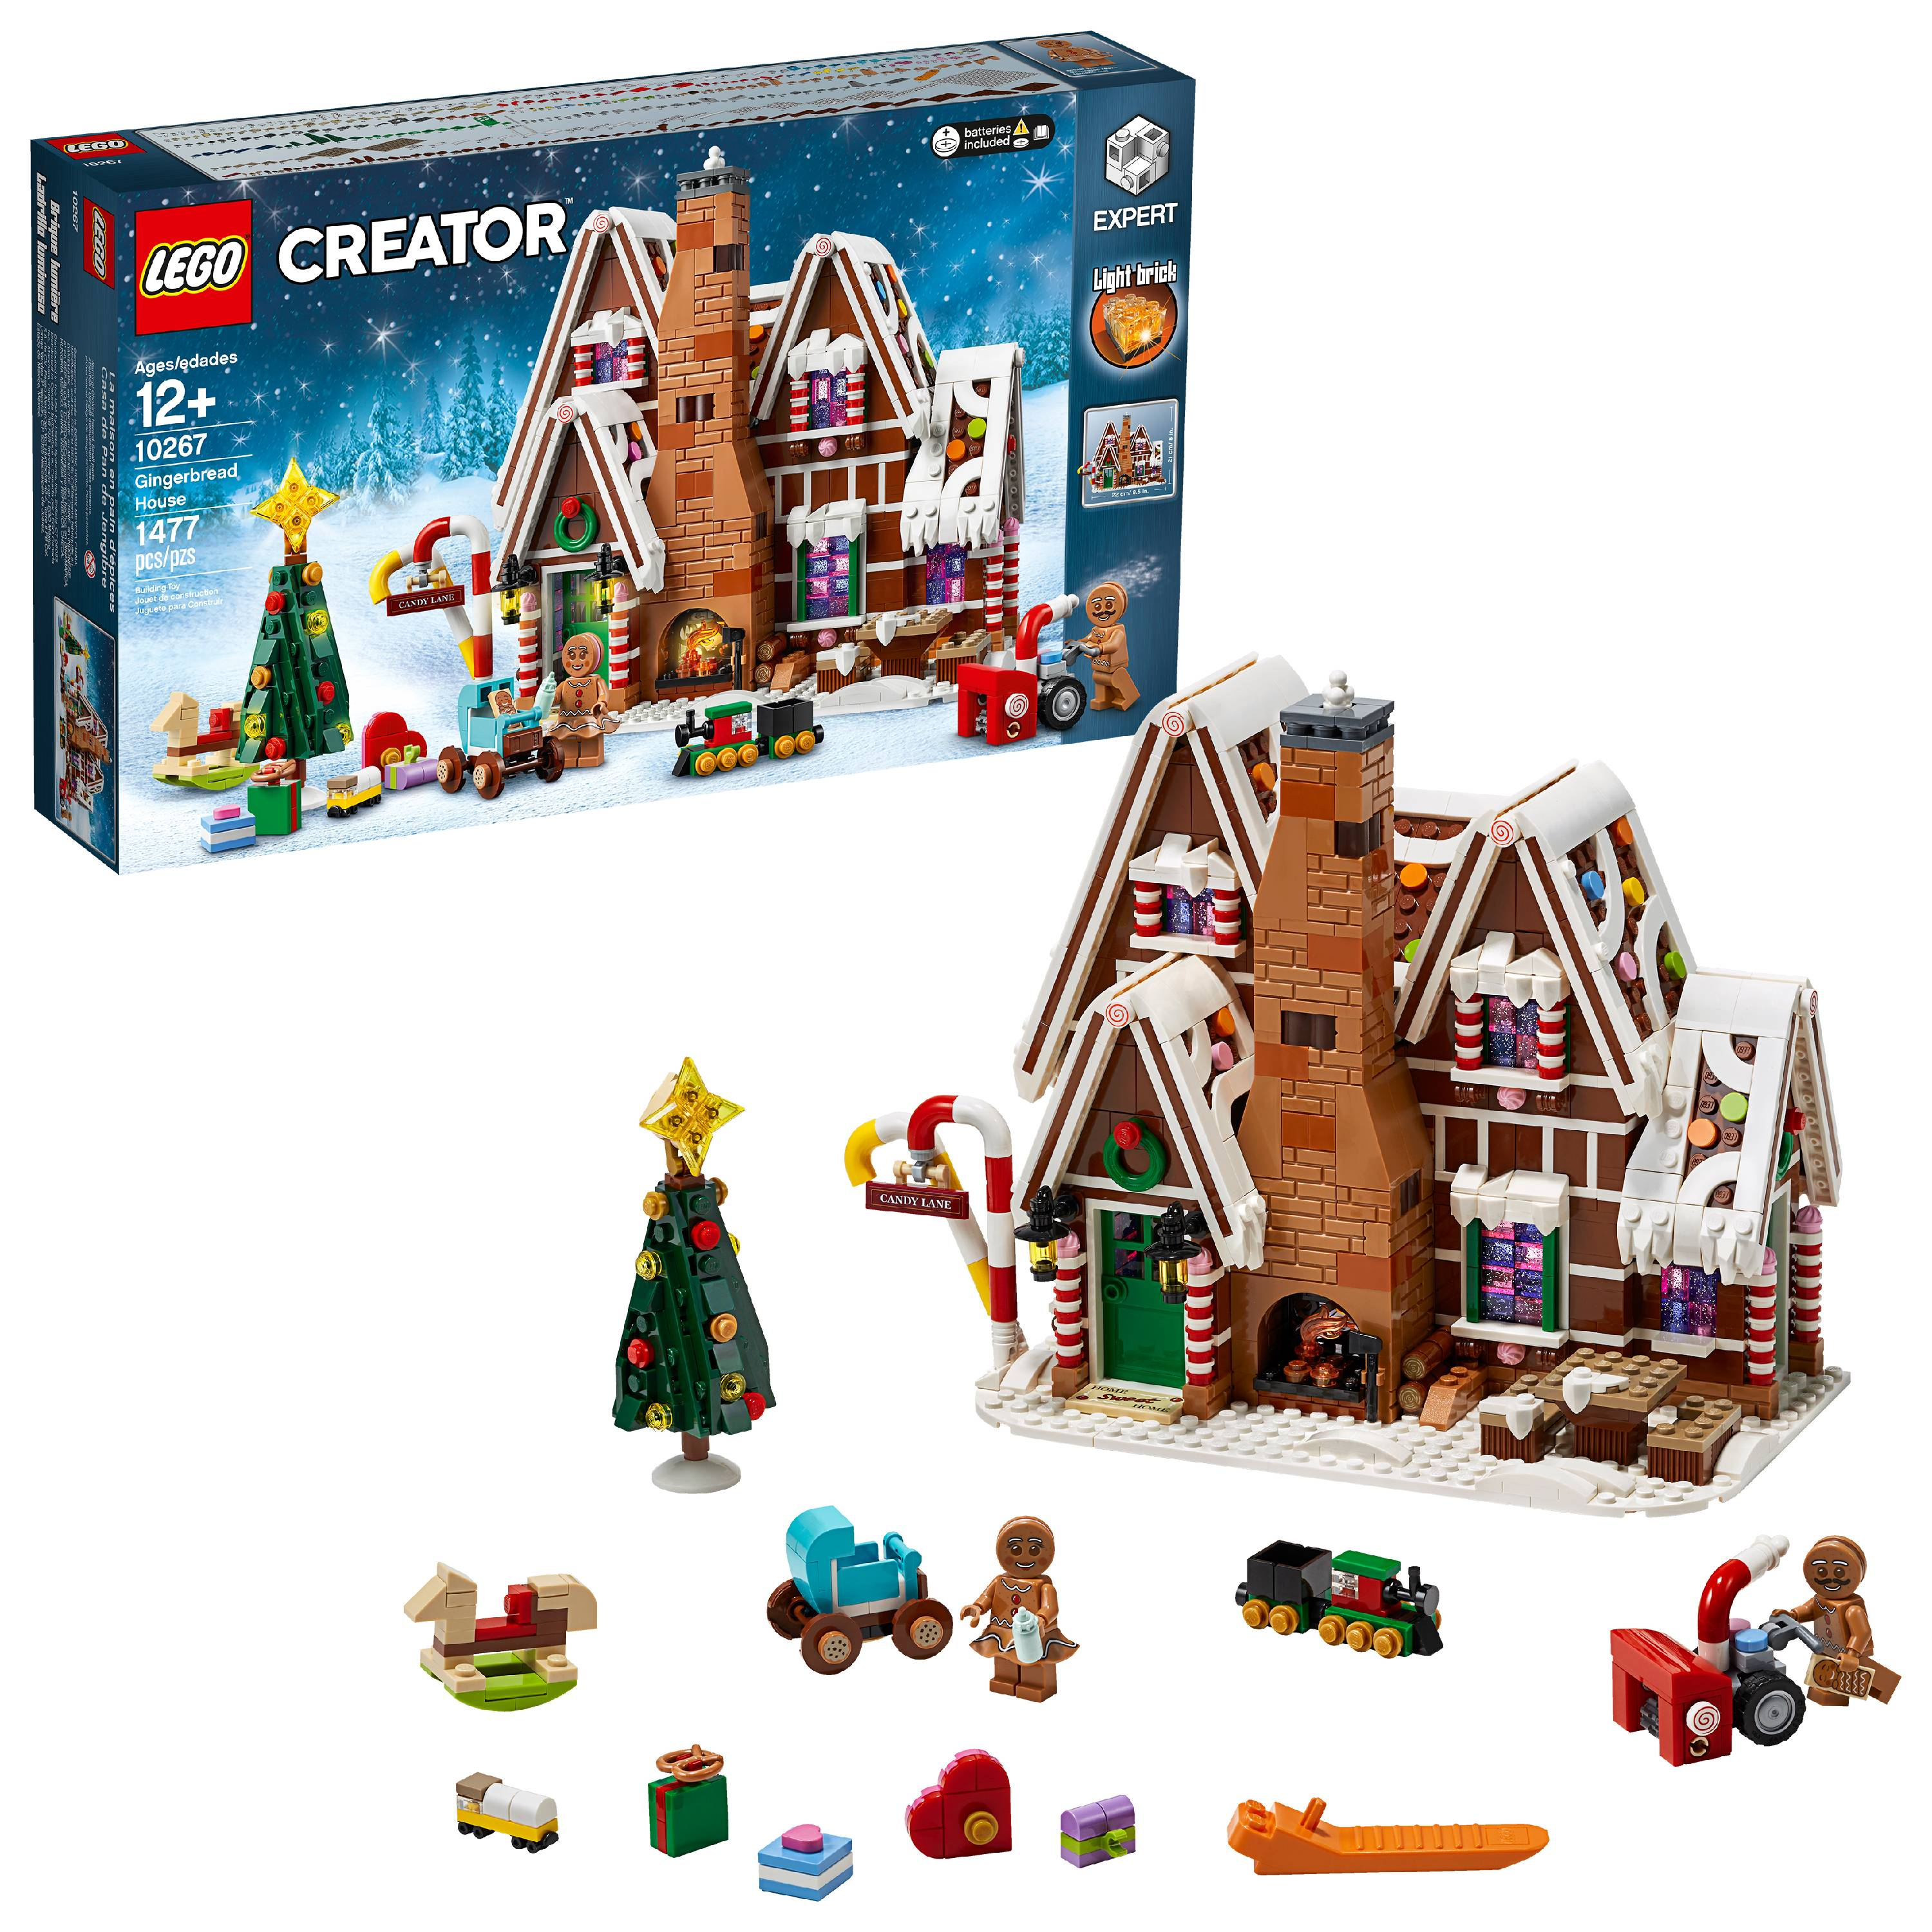 tile Christmas Gingerbread Man /& Woman with Baby - FREE SHIPPING NEW LEGO